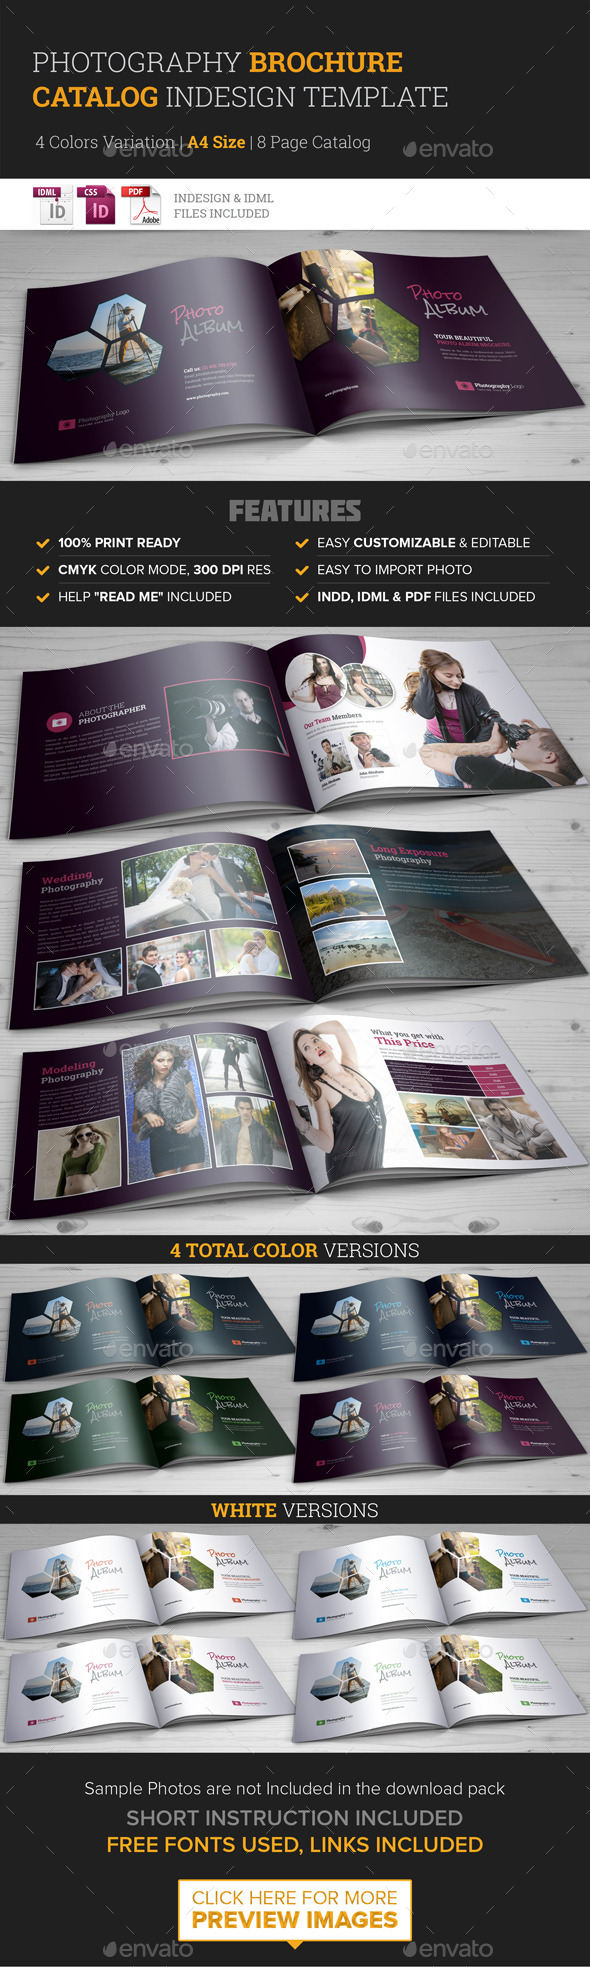 GraphicRiver Photography Brochure Catalog InDesign Template 11329813